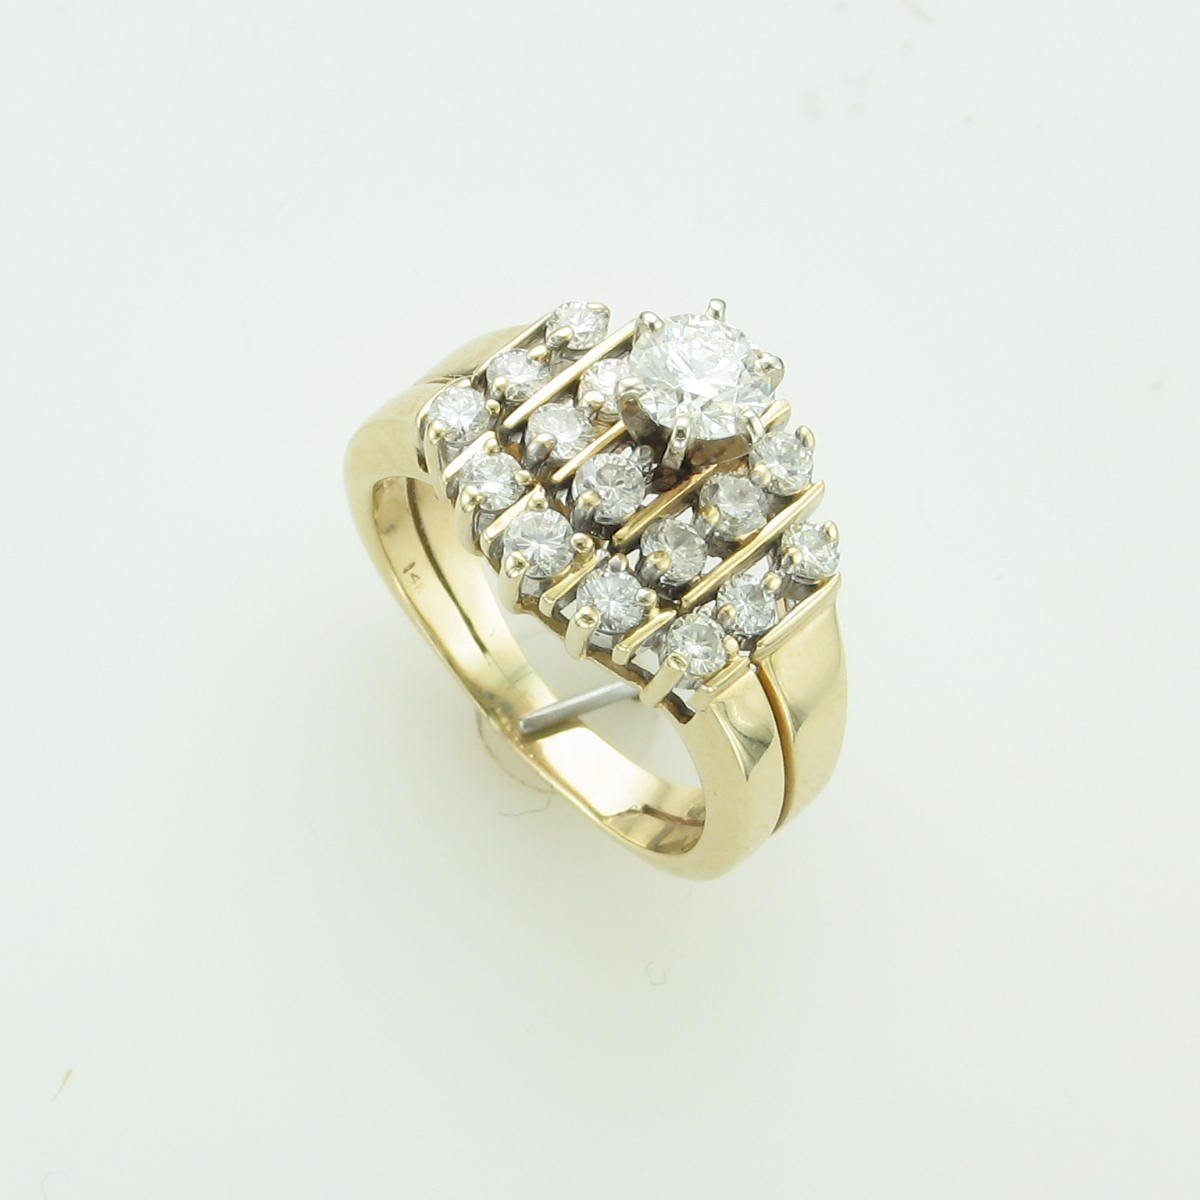 0.40ct Center Diamond  with 0.50tcw Accent Diamond Ring set in 14K Yellow Gold